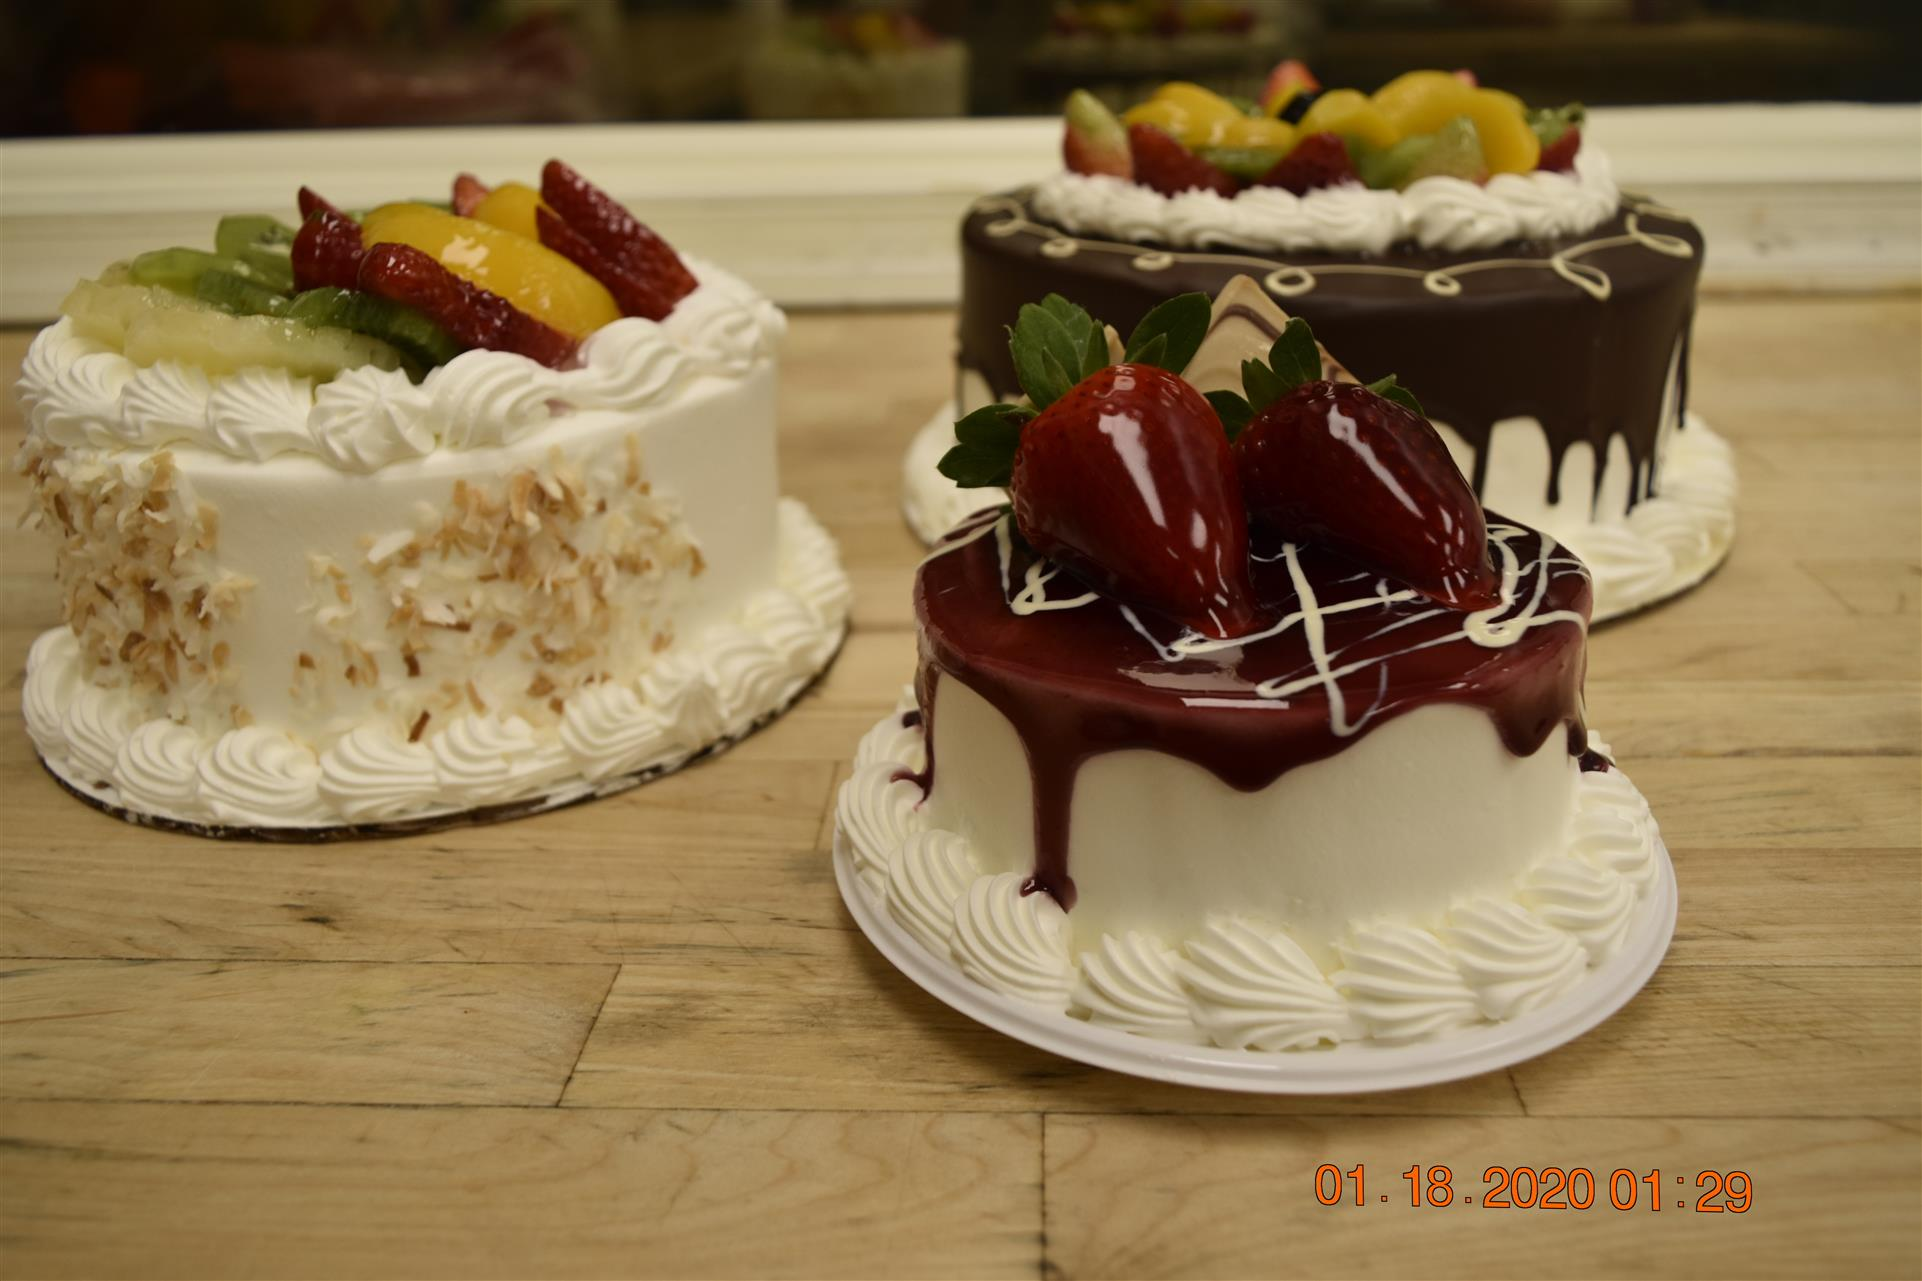 three small cakes with fruit toppings